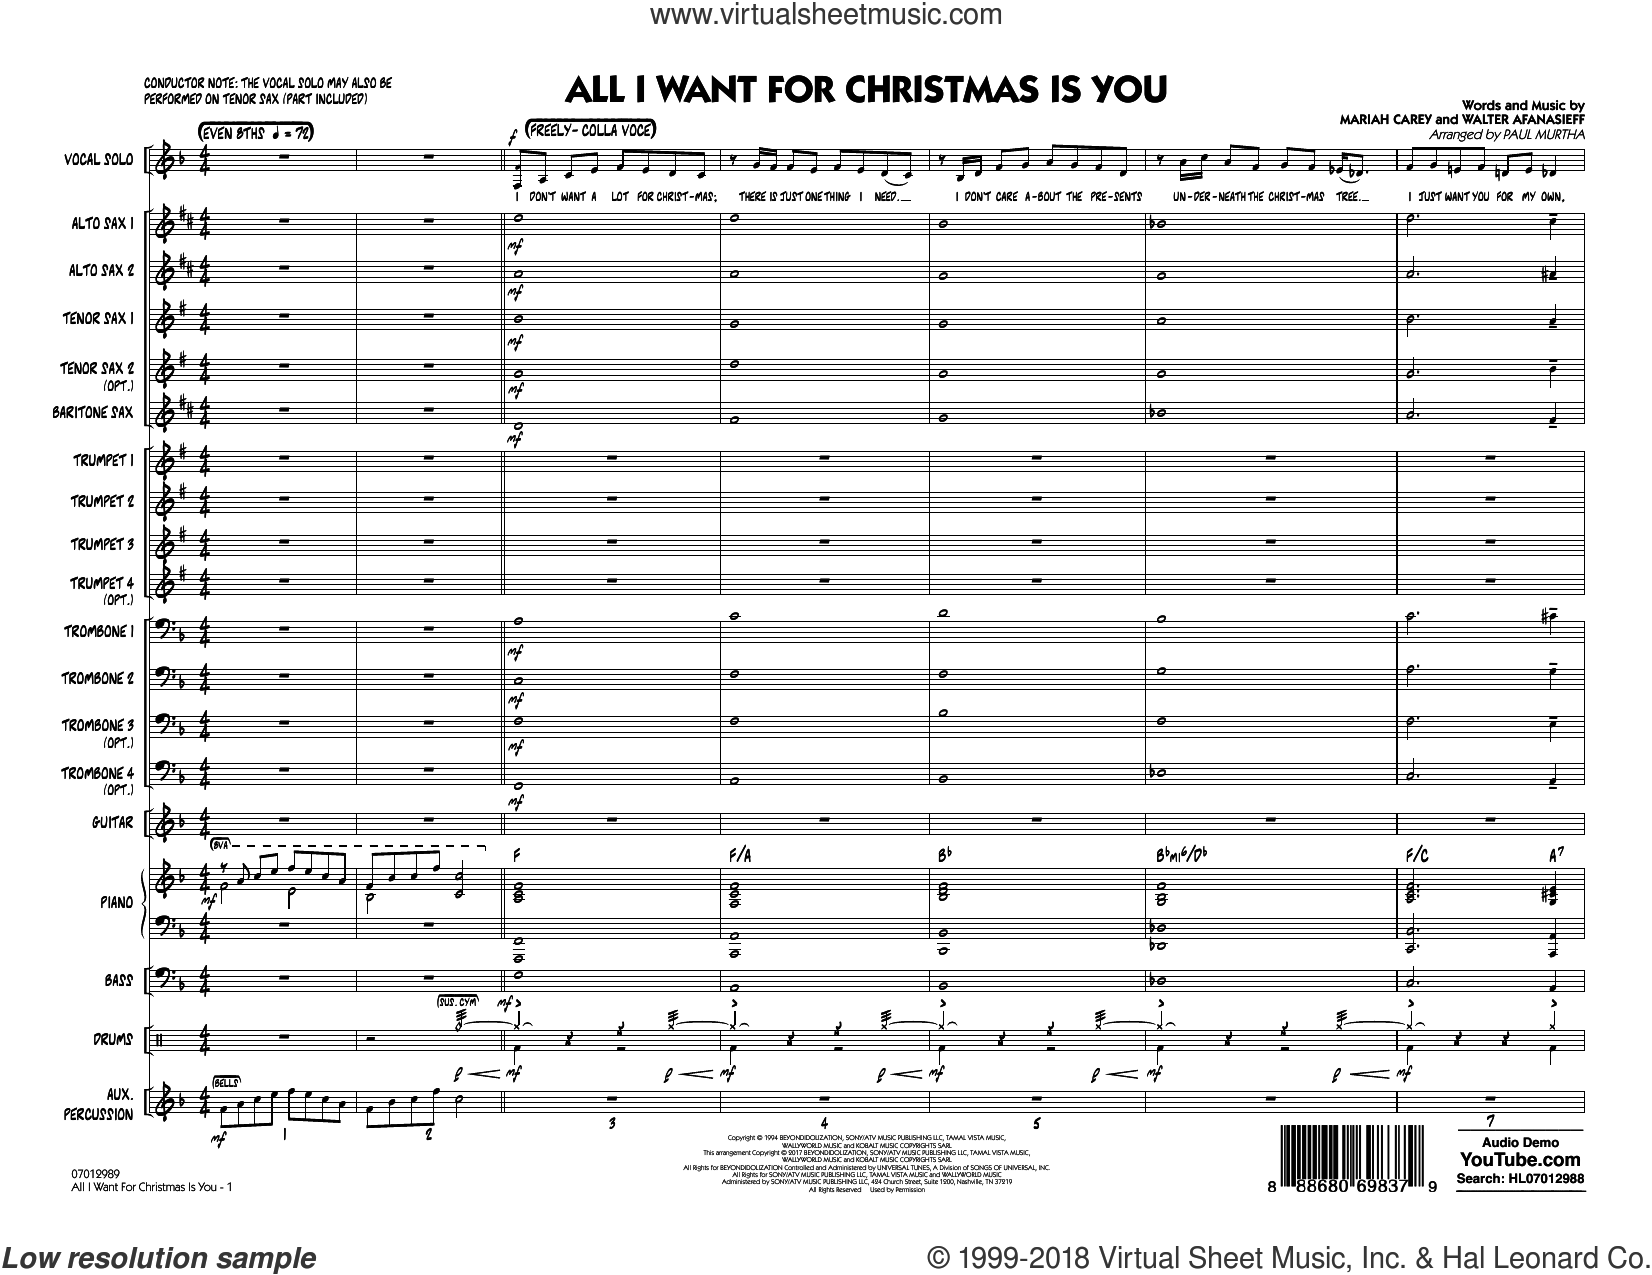 All I Want For Christmas Is You Sheet Music Pdf.Murtha All I Want For Christmas Is You Sheet Music Complete Collection For Jazz Band